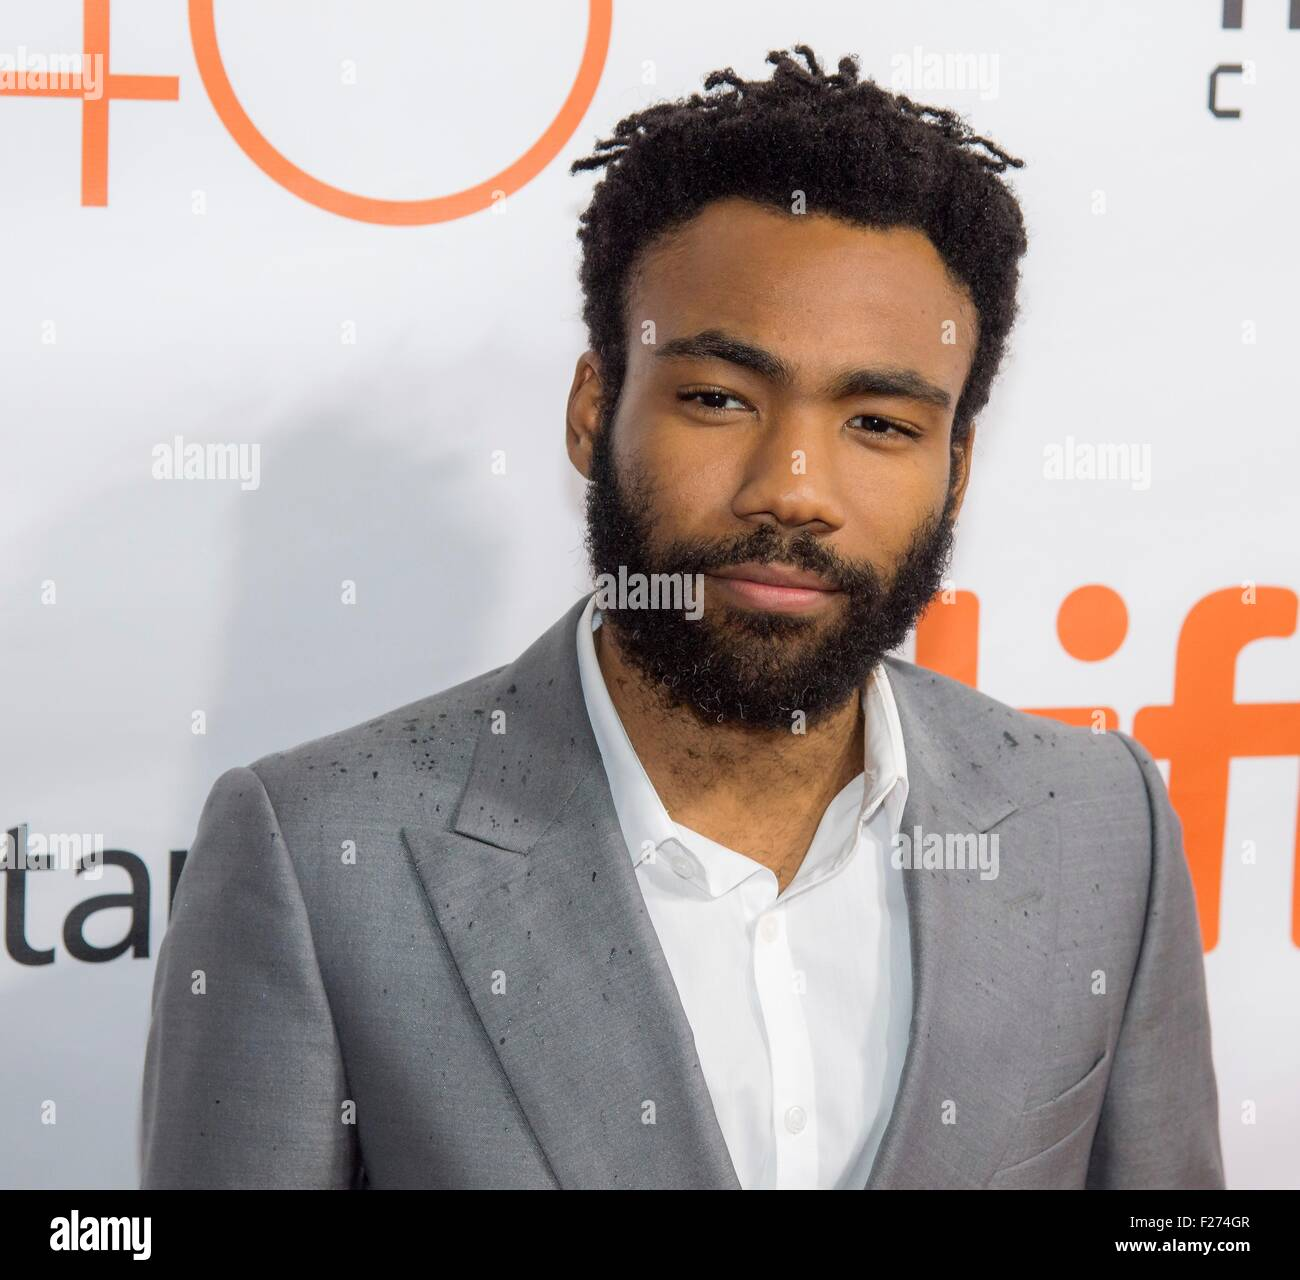 Actor Donald Glover attends the world premiere for The Martian at the Toronto International Film Festival at the - Stock Image